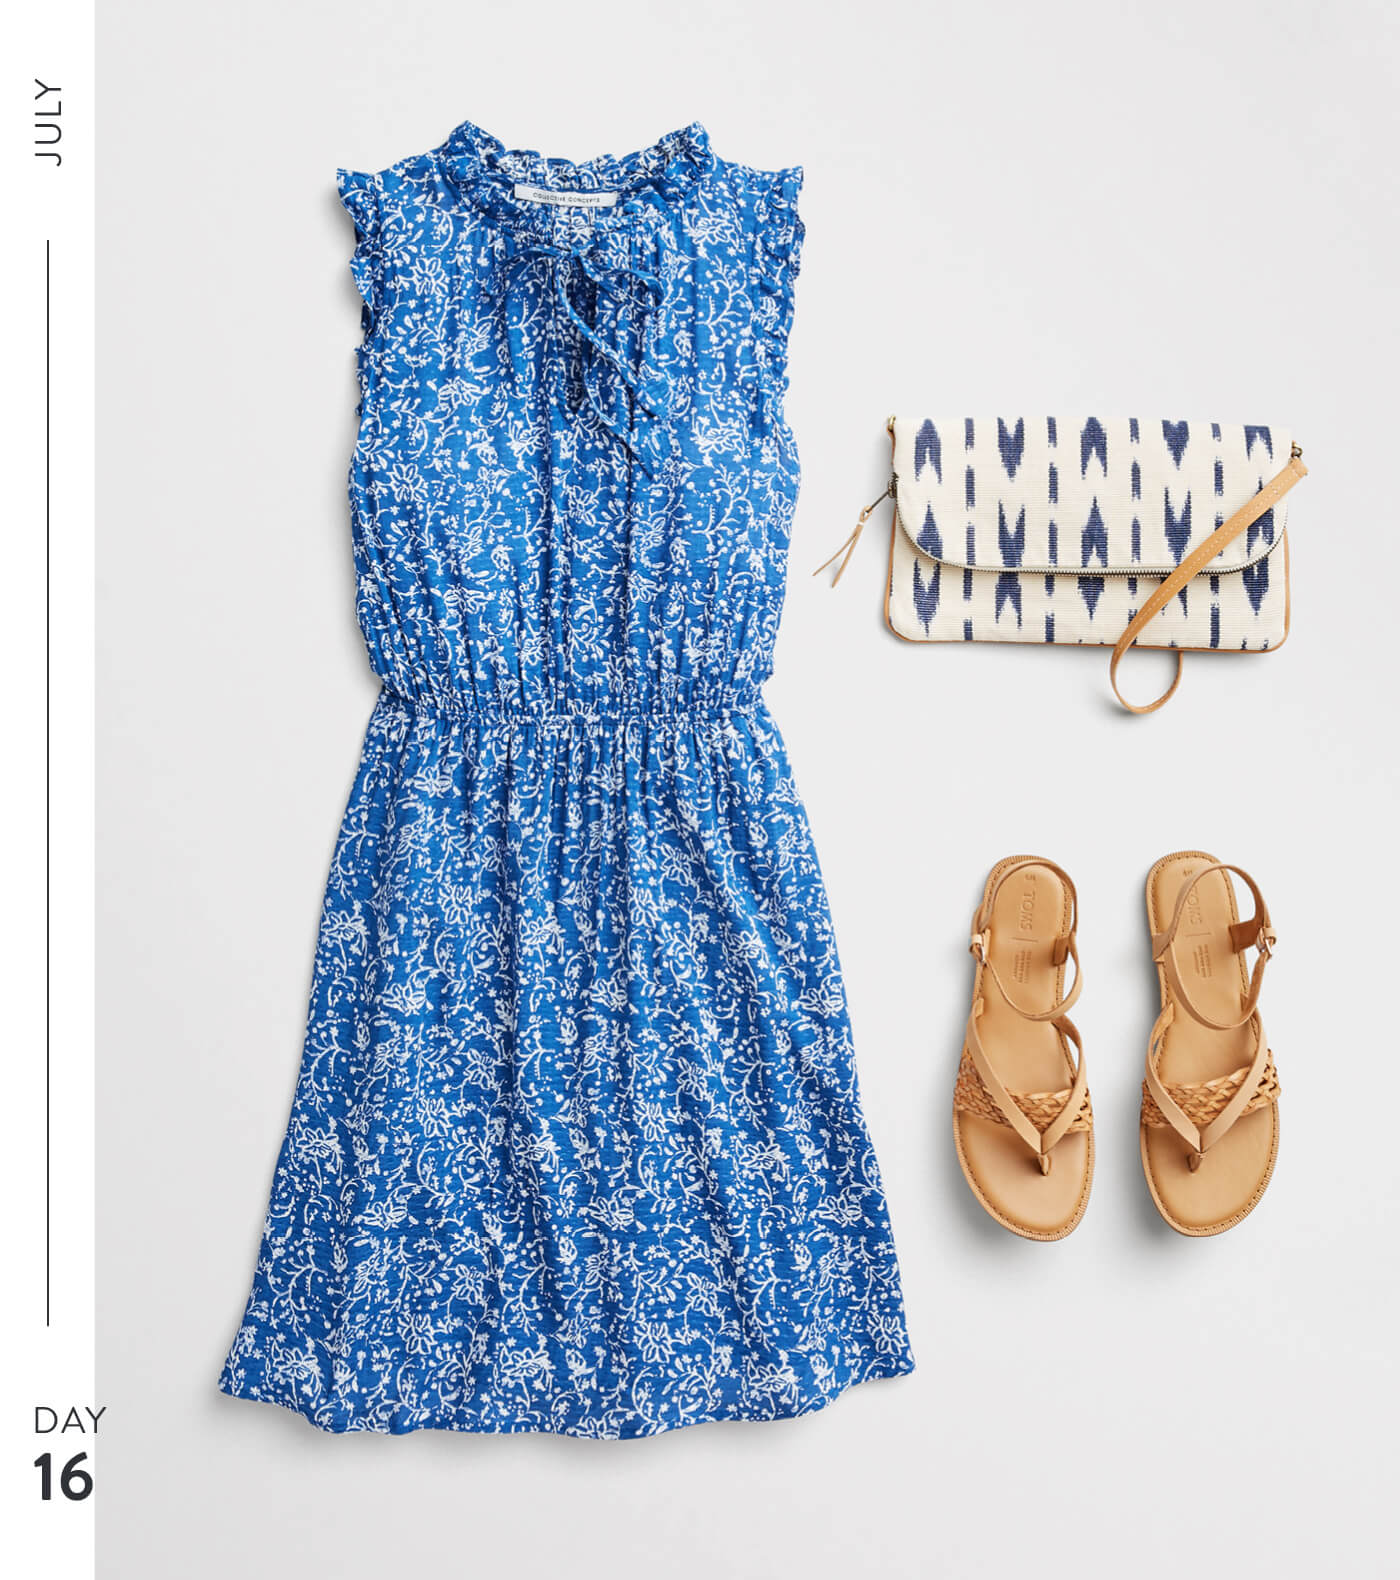 T3_W19_BLG_July-Month-of-Outfits-_357260432_16